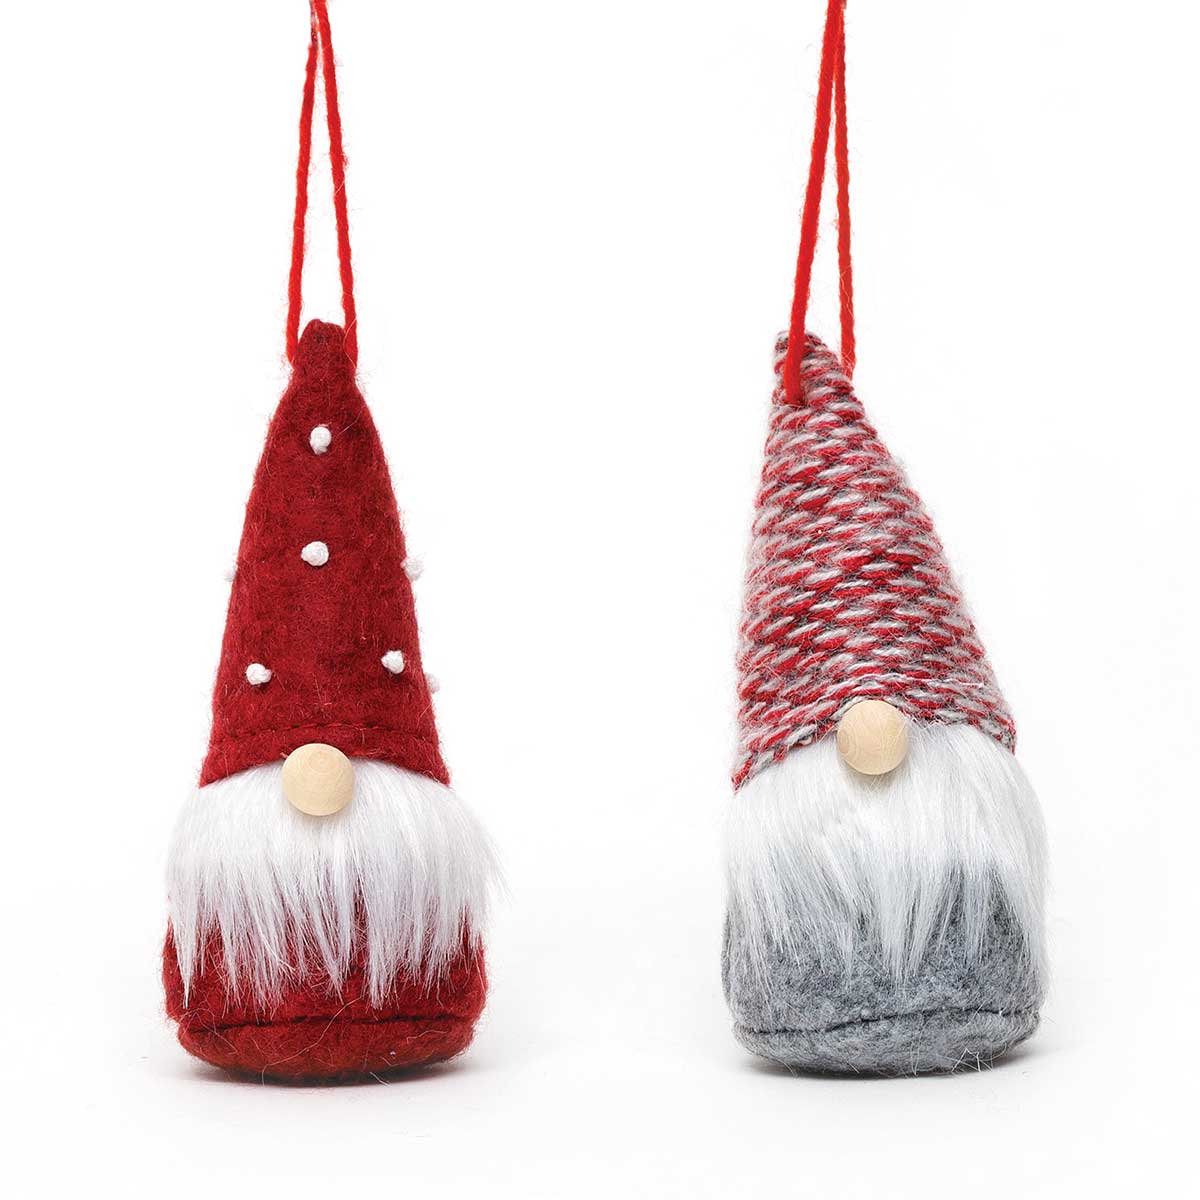 RED GNOME ORNAMENT WITH WOOD NOSE &